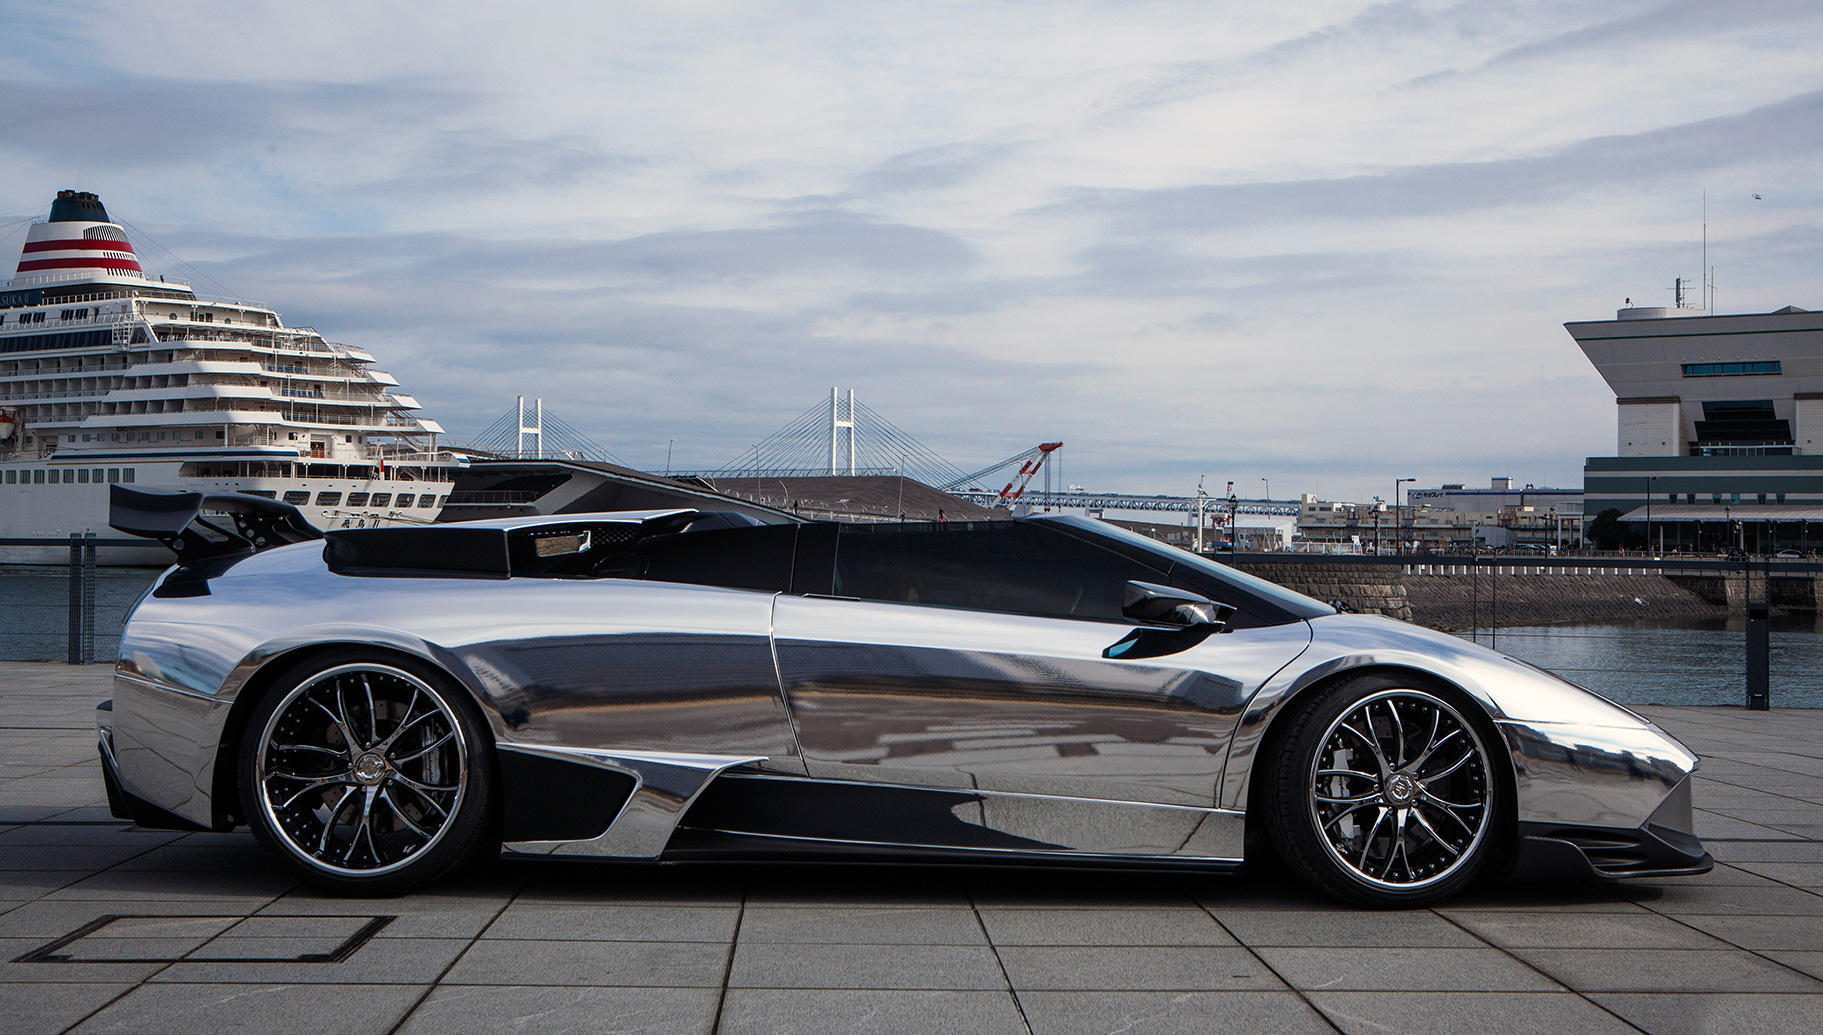 Custom LF-113 on the Lamborghini Murcielago.